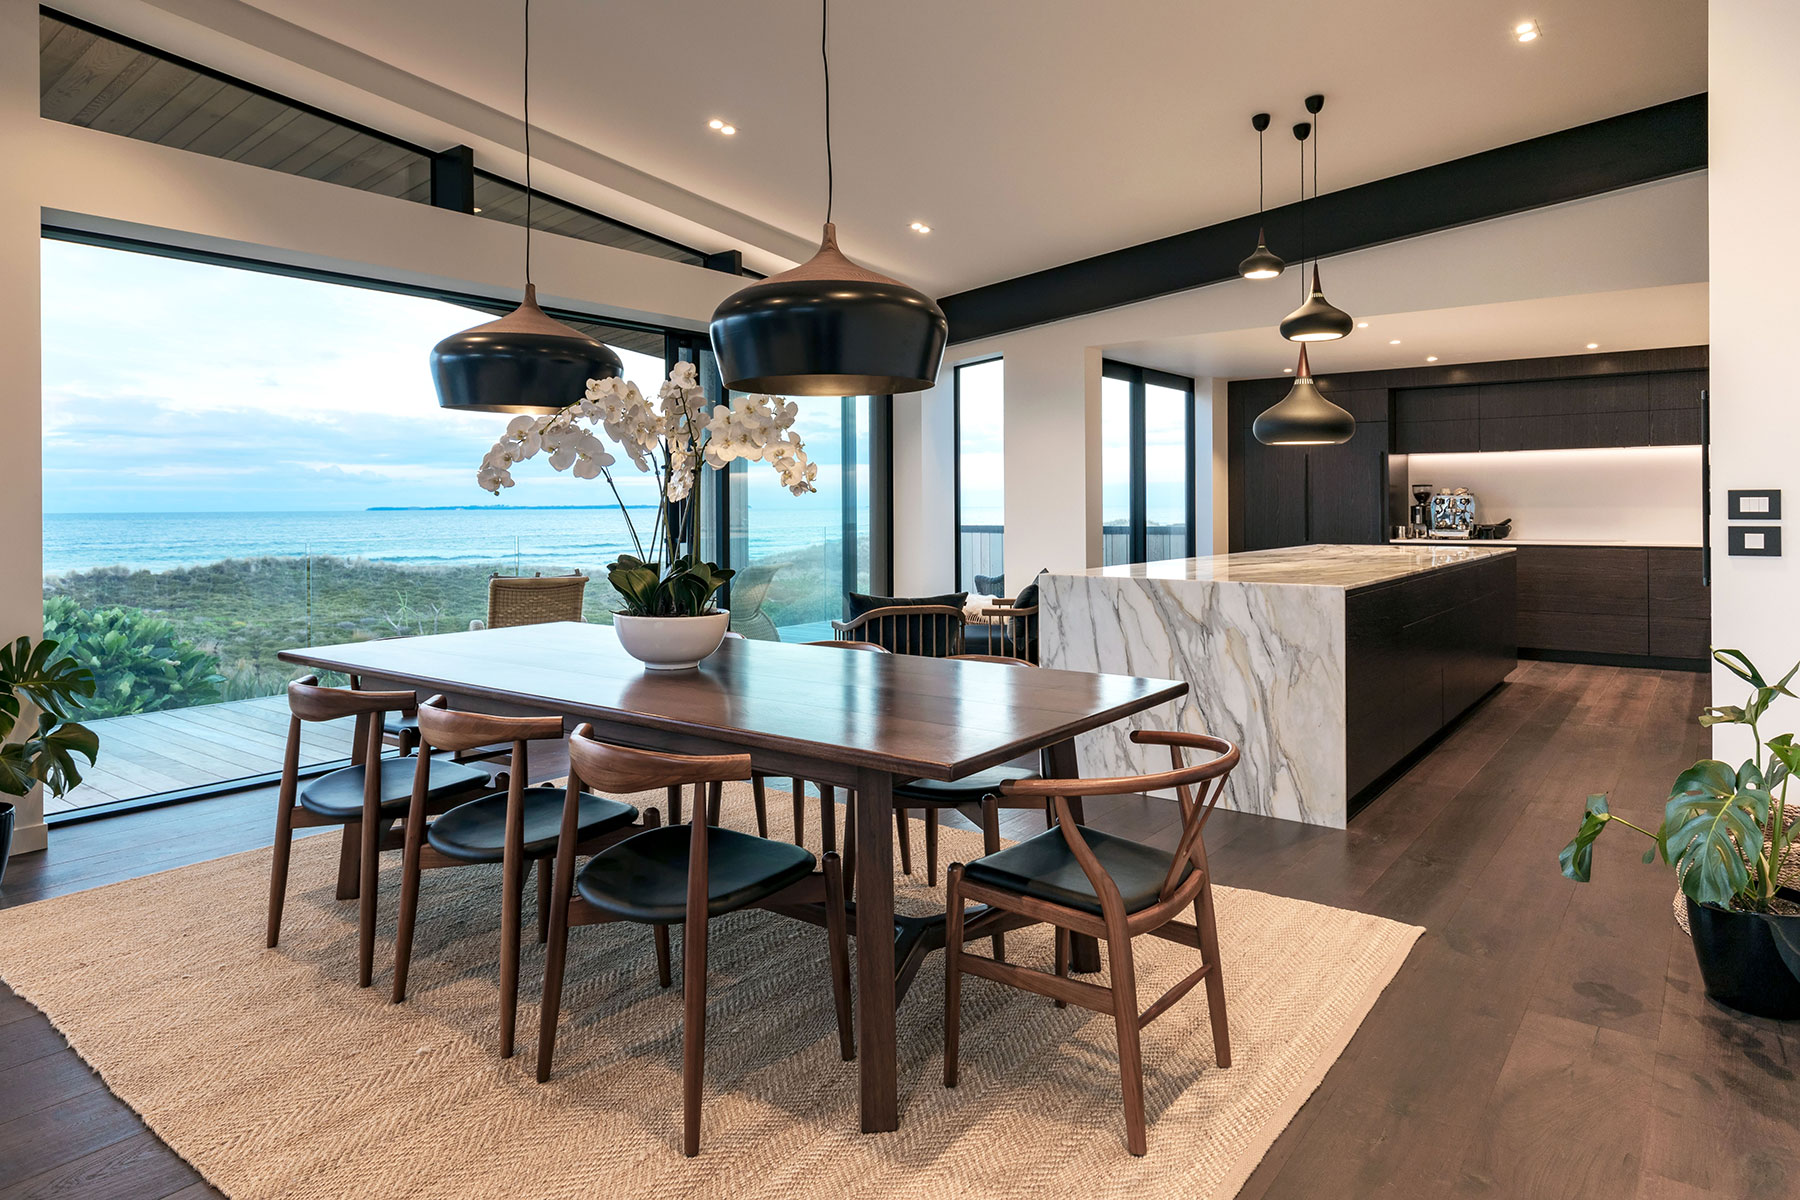 Lighting design different style ideas for lighting above your ...